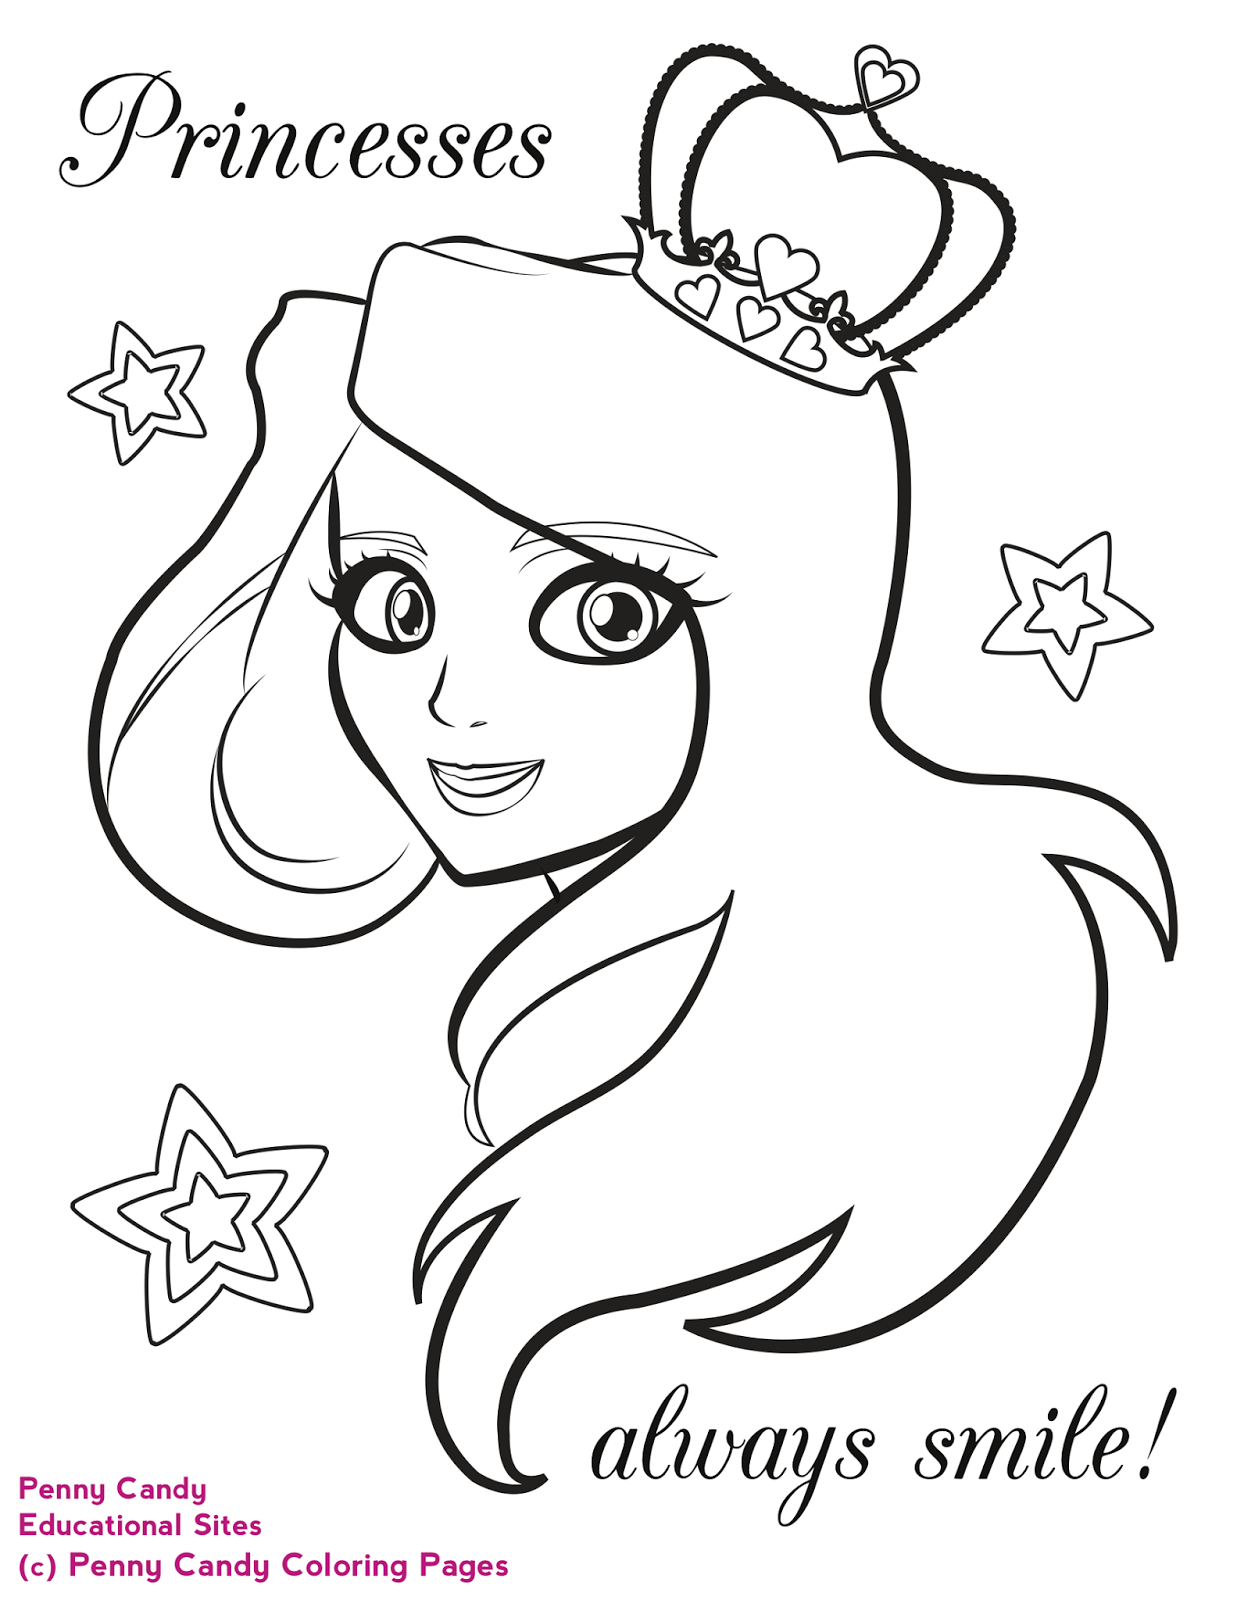 Coloring princess pictures - Coloring Princess Free Download Princess Coloring Book Printable Free Printable Princess Crown Coloring Pages Free